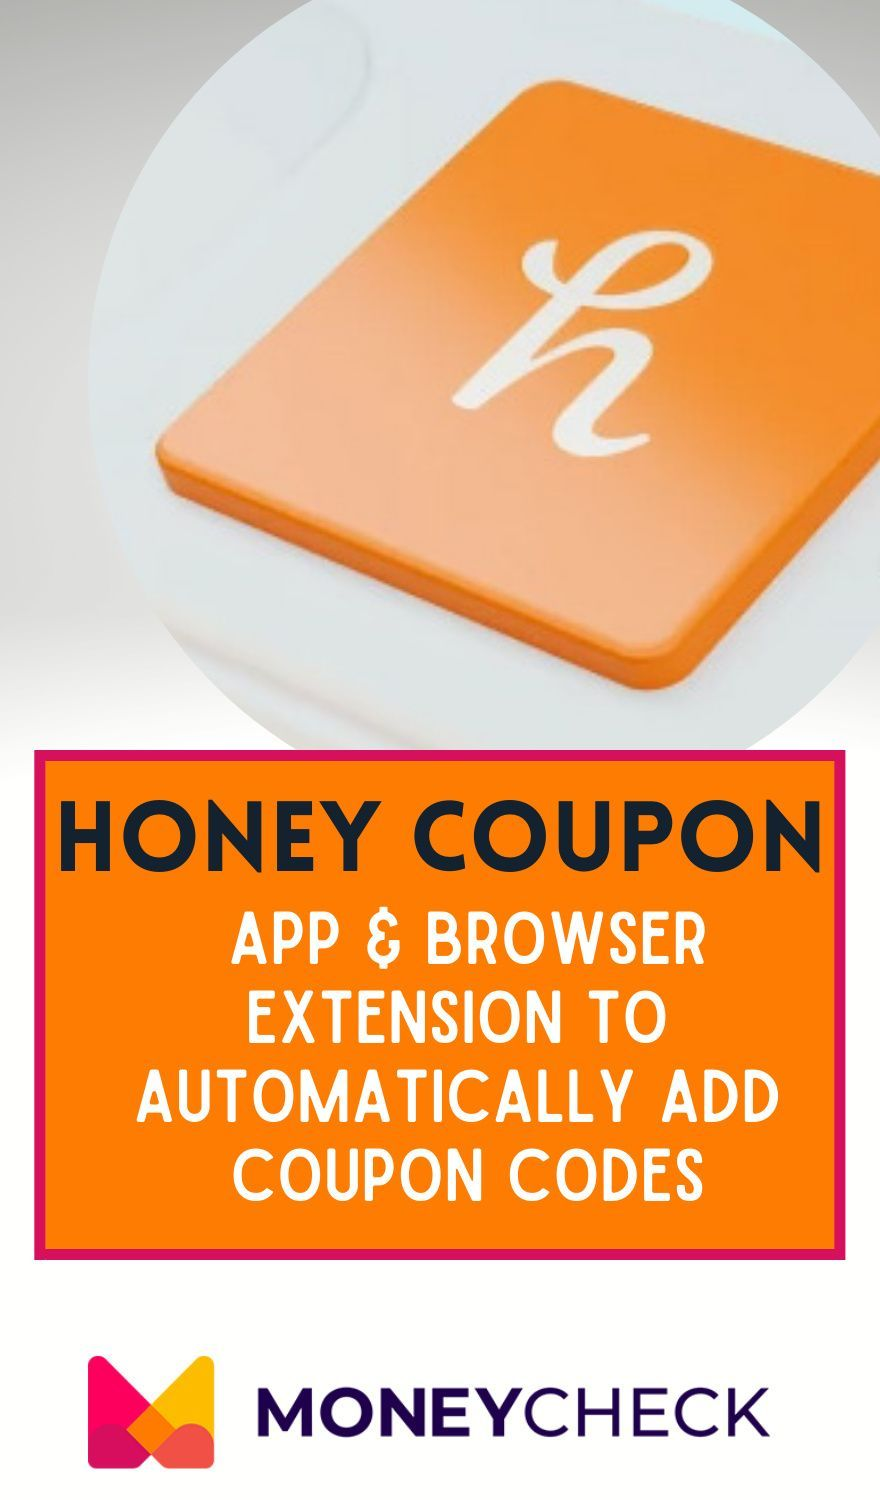 Honey Coupon Review App Browser Extension To Automatically Add Coupon Codes In 2020 Honey Coupon Coupon Apps Money Saving Plan